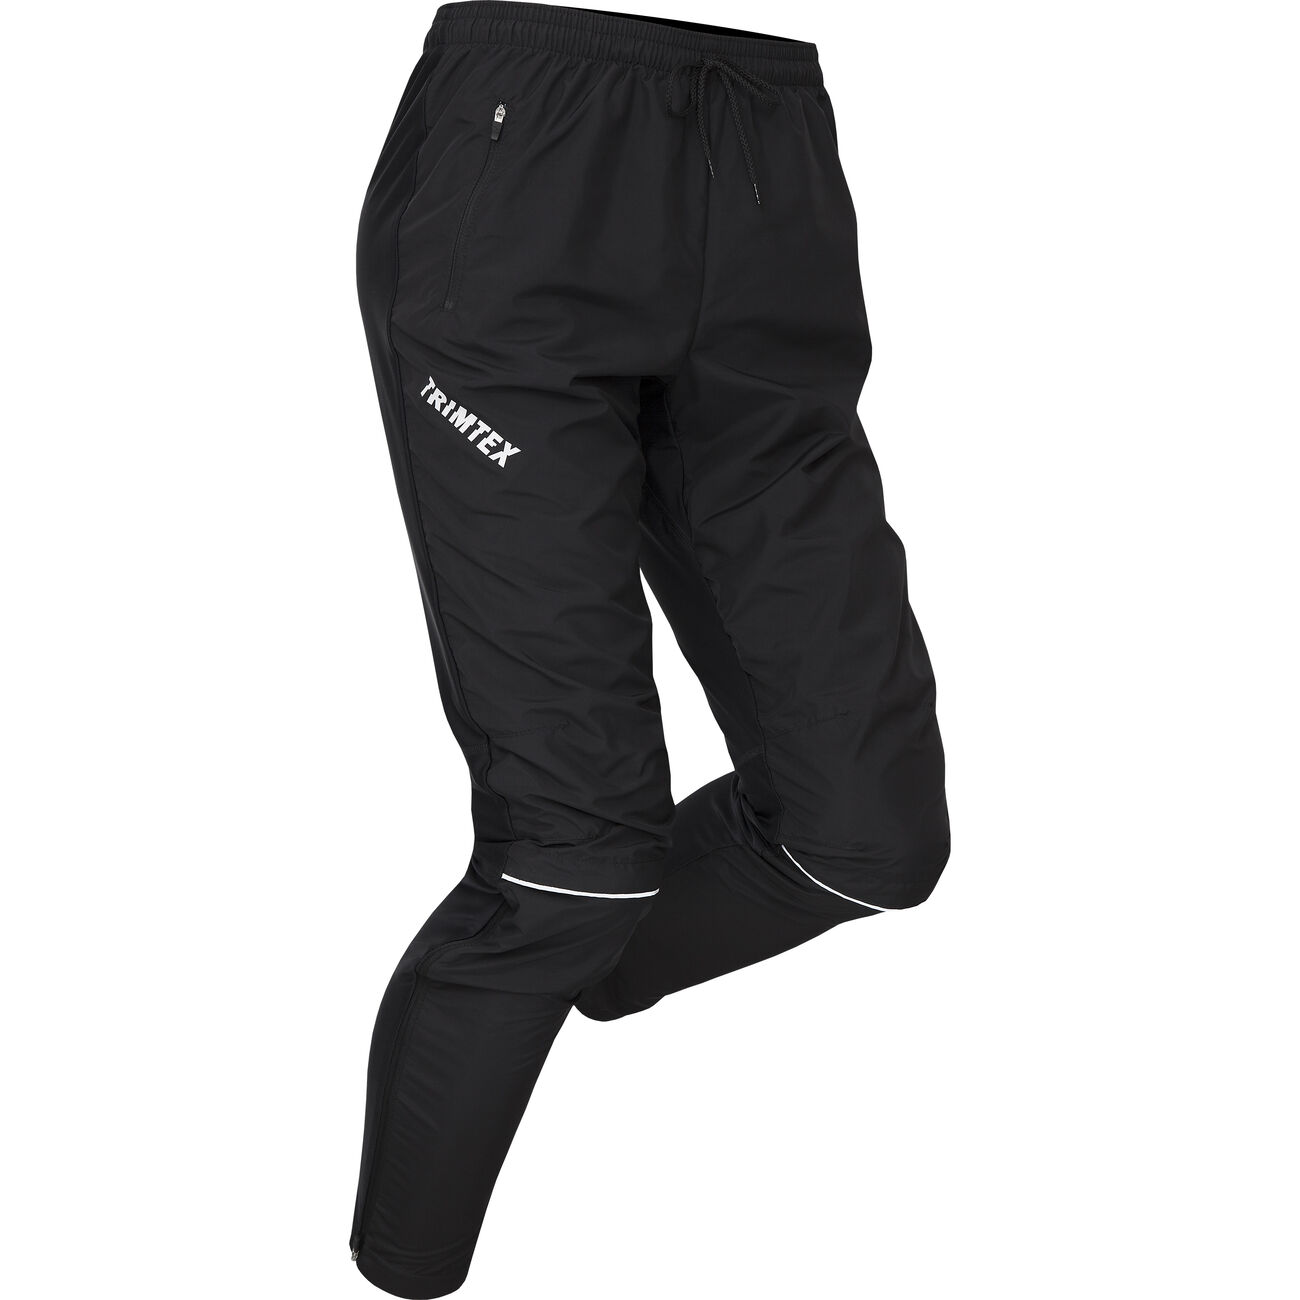 Trainer training pants men's